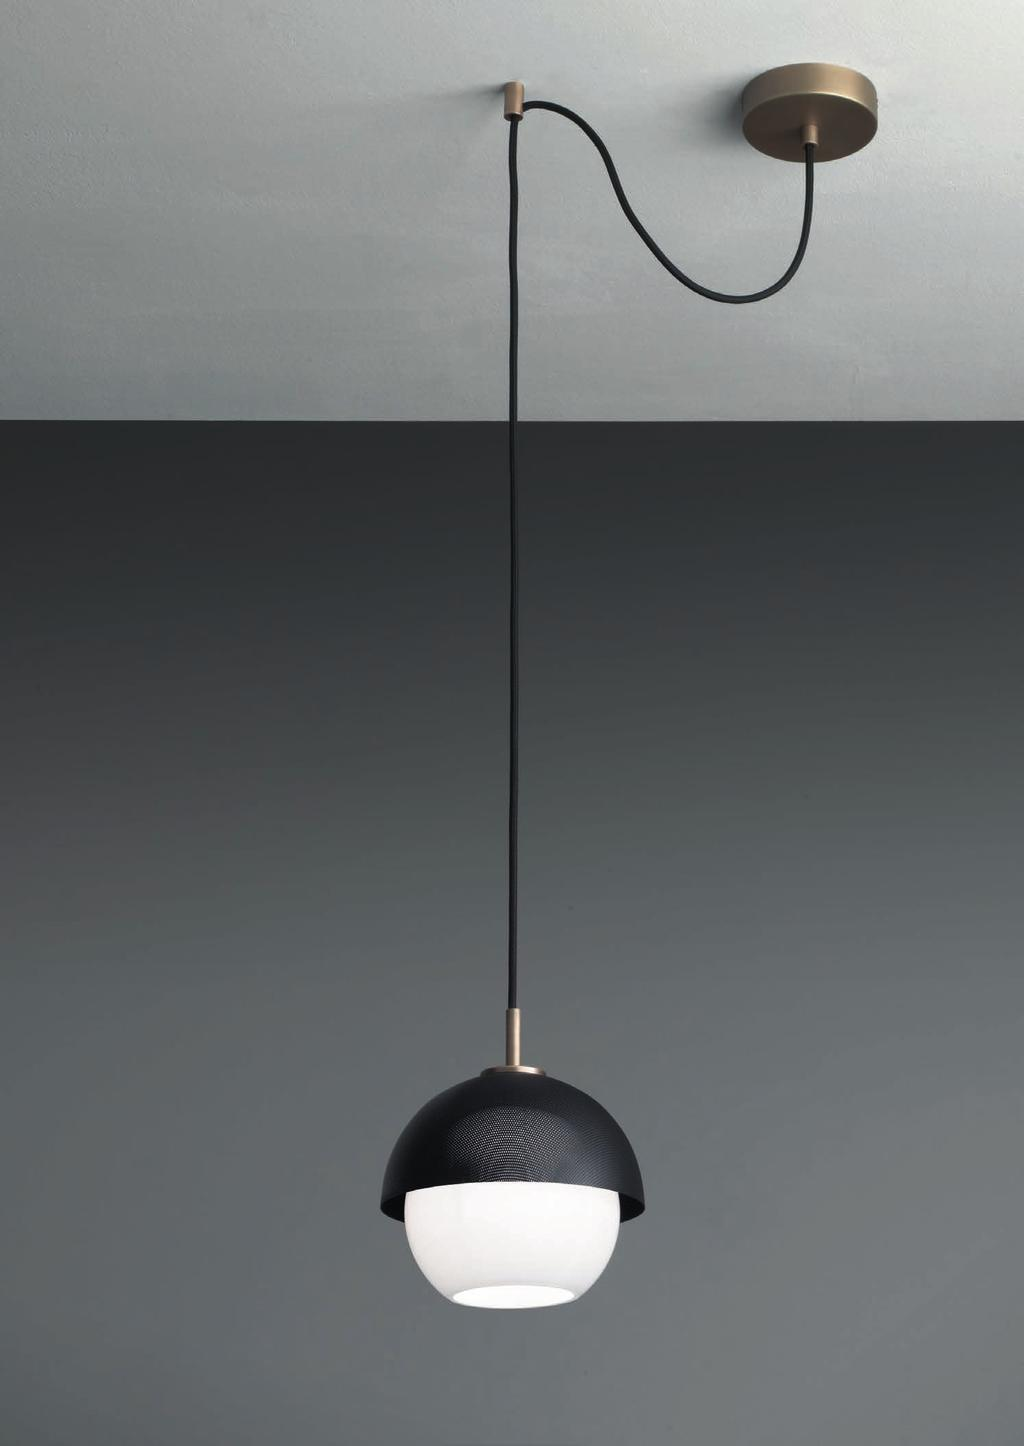 URBAN SUSPENSION 1 DECENTRALIZED 50cm-19 Ø 20cm-7 8 Suspended lamp with decentralization point with diffuse light and white, tobacco or smoke Murano blown glass diffuser.